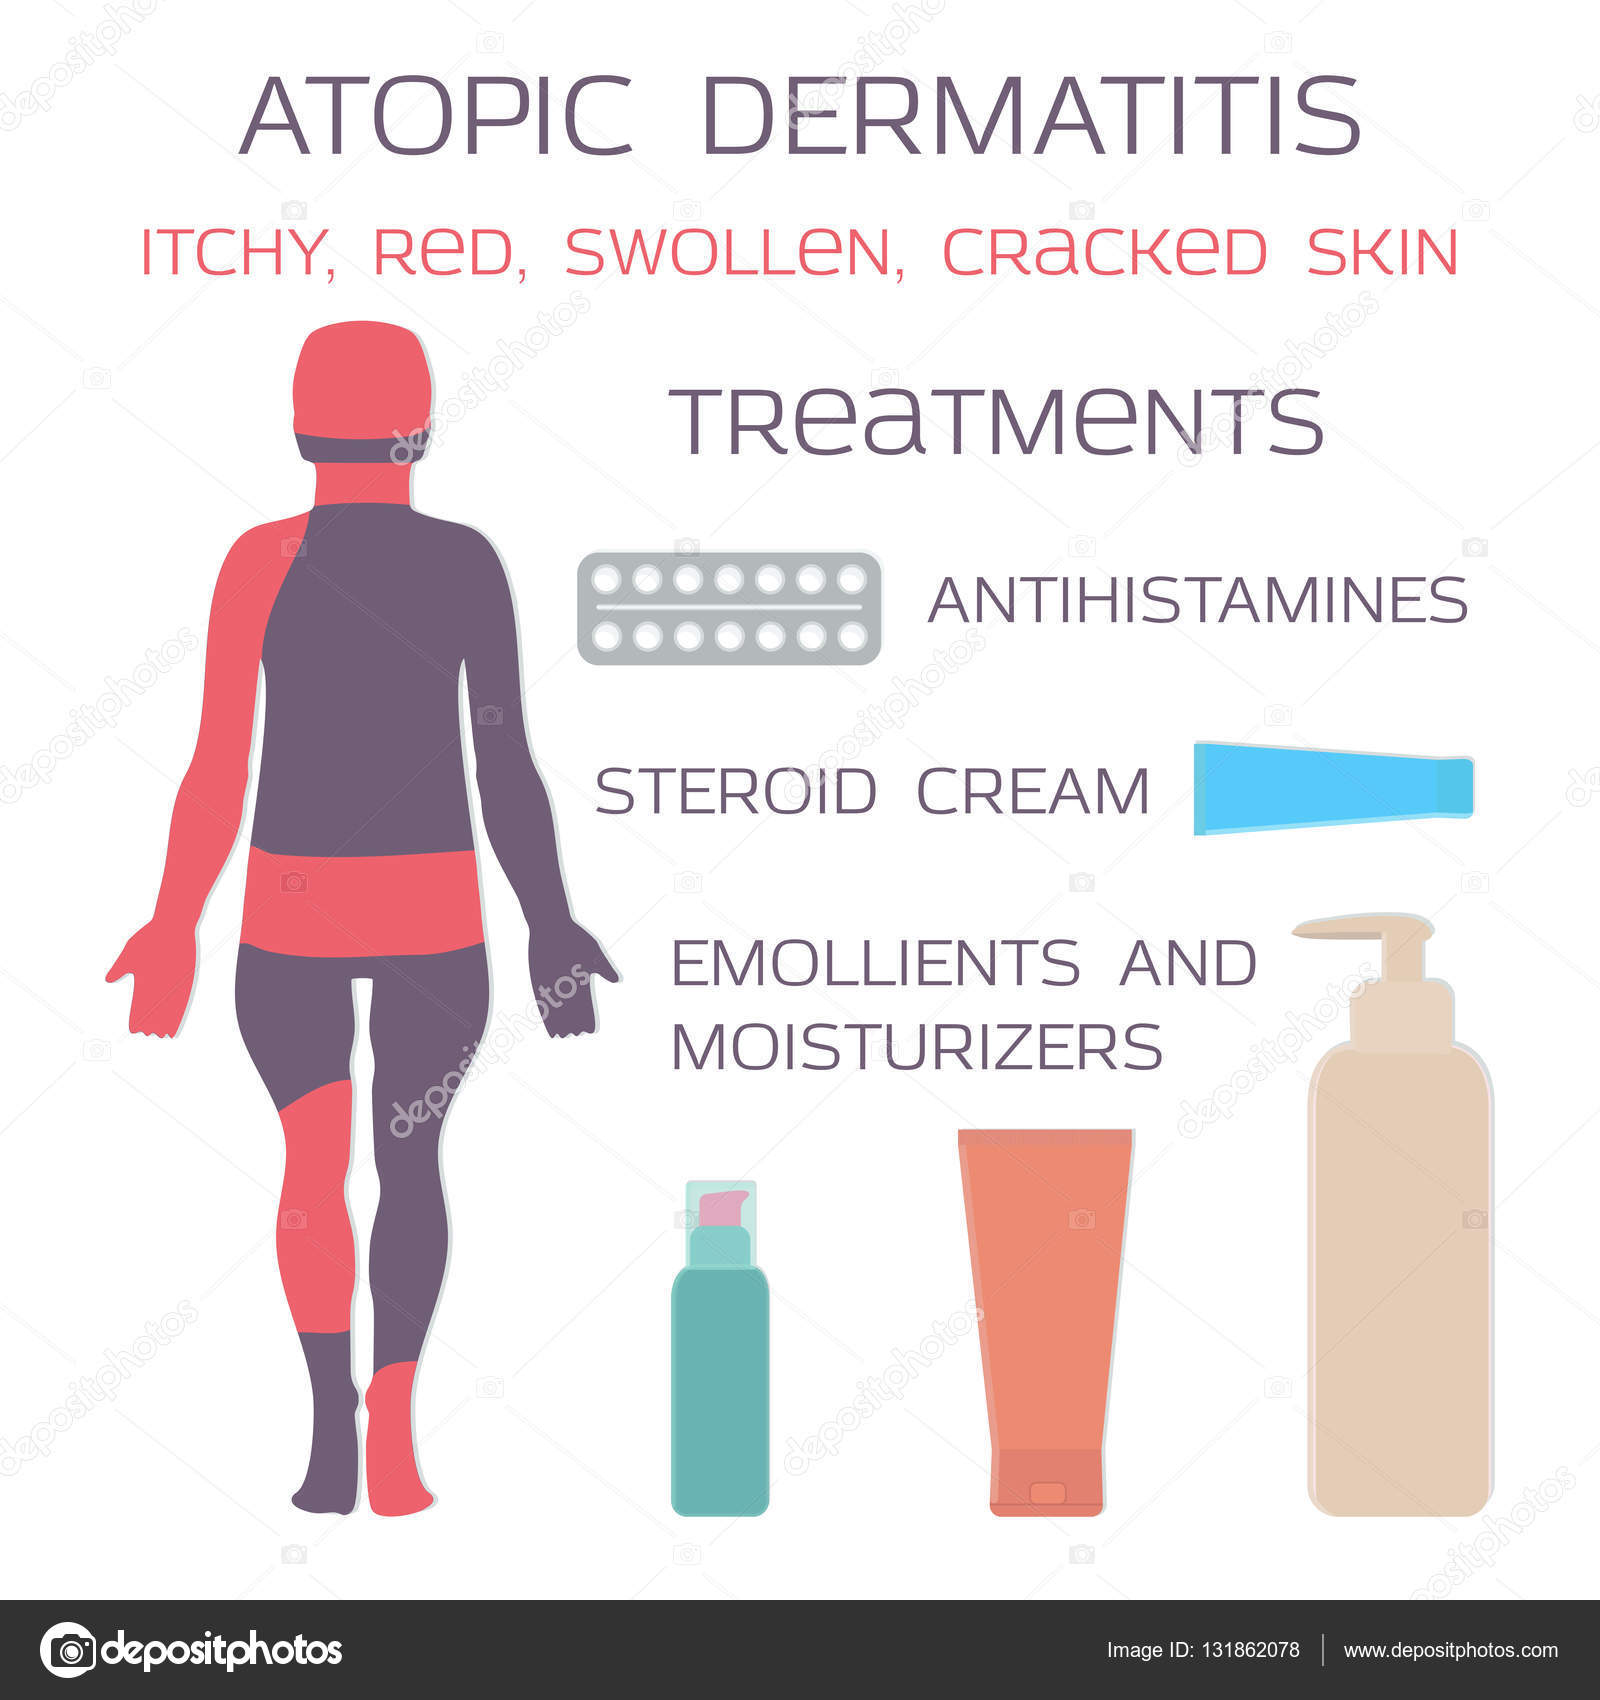 Steroid tablets for dermatitis cannon beach organon